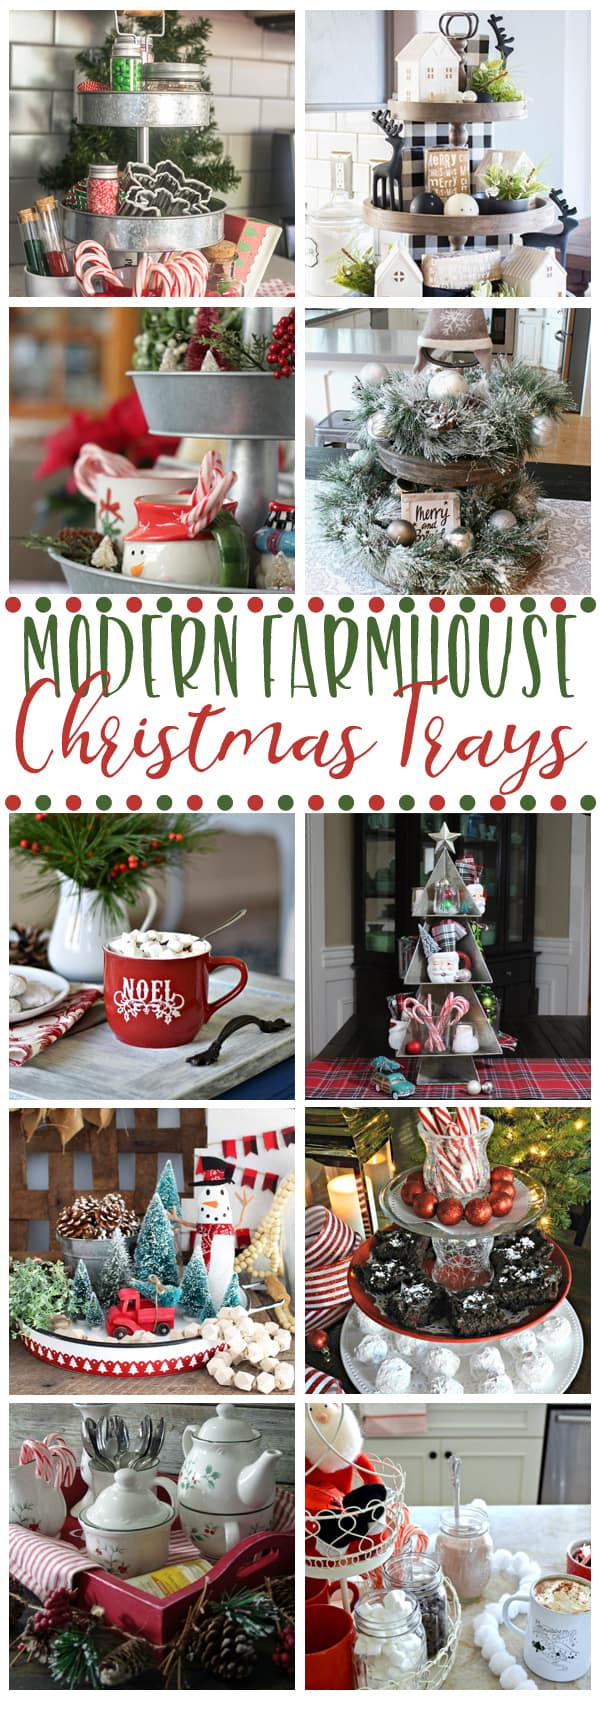 See how fabulous bloggers decorate their farmhouse trays for Christmas!